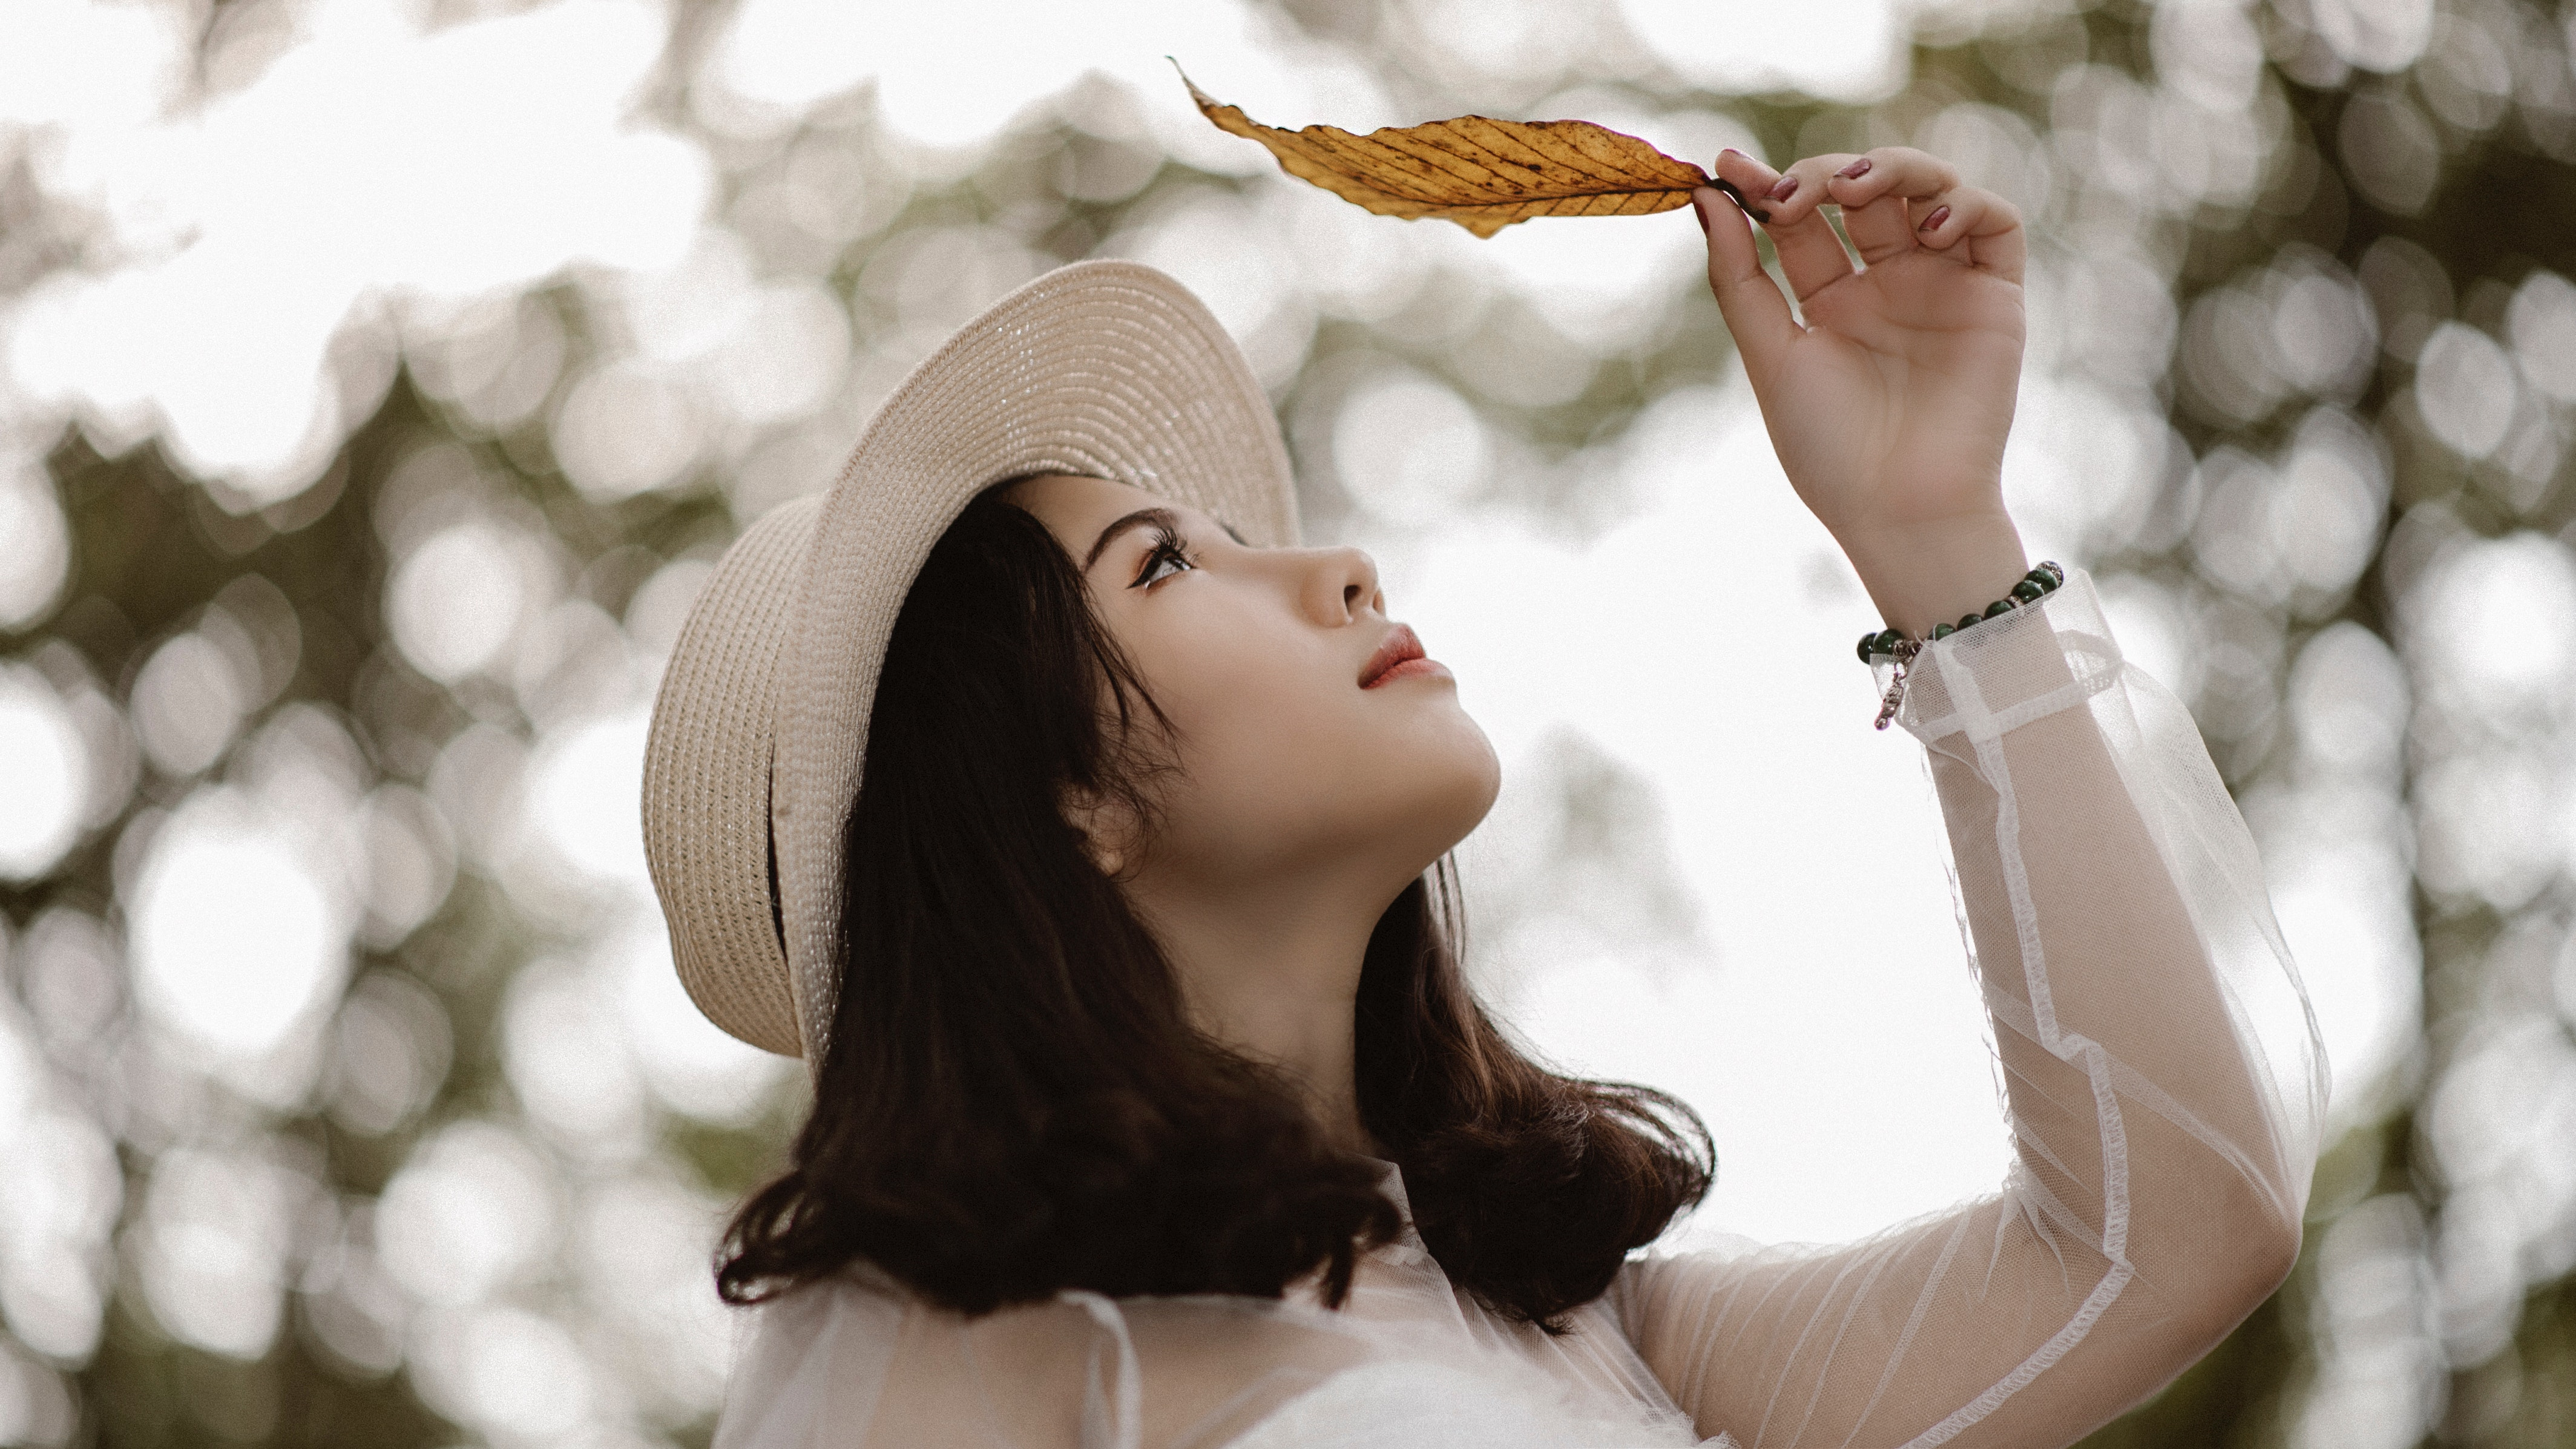 Woman Wearing White Long Sleeve Scoop-neck Top While Holding Brown Leaf, Leaf, Young, Woman, Wear, HQ Photo